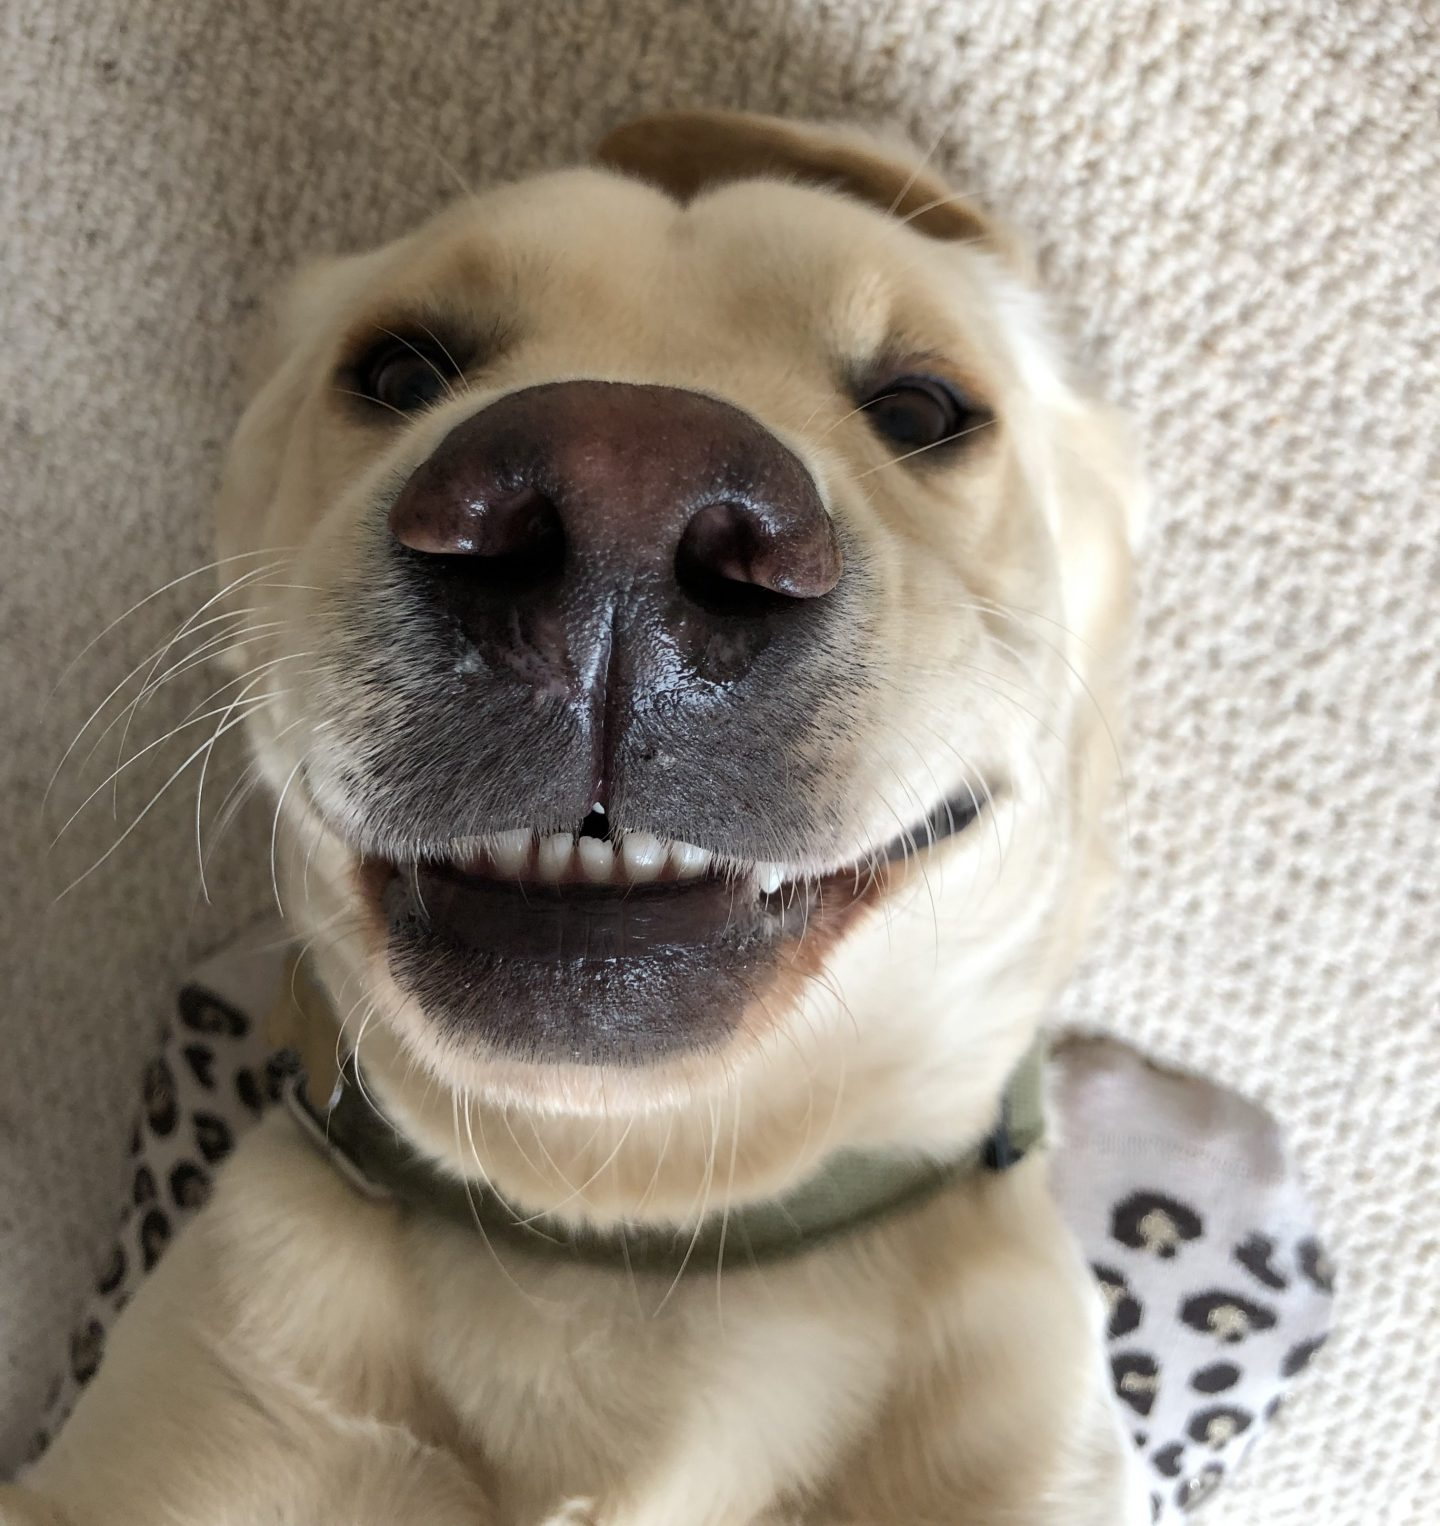 My hilarious Labrador lying on his back with his teeth showing looking like he's grinning at the camera.